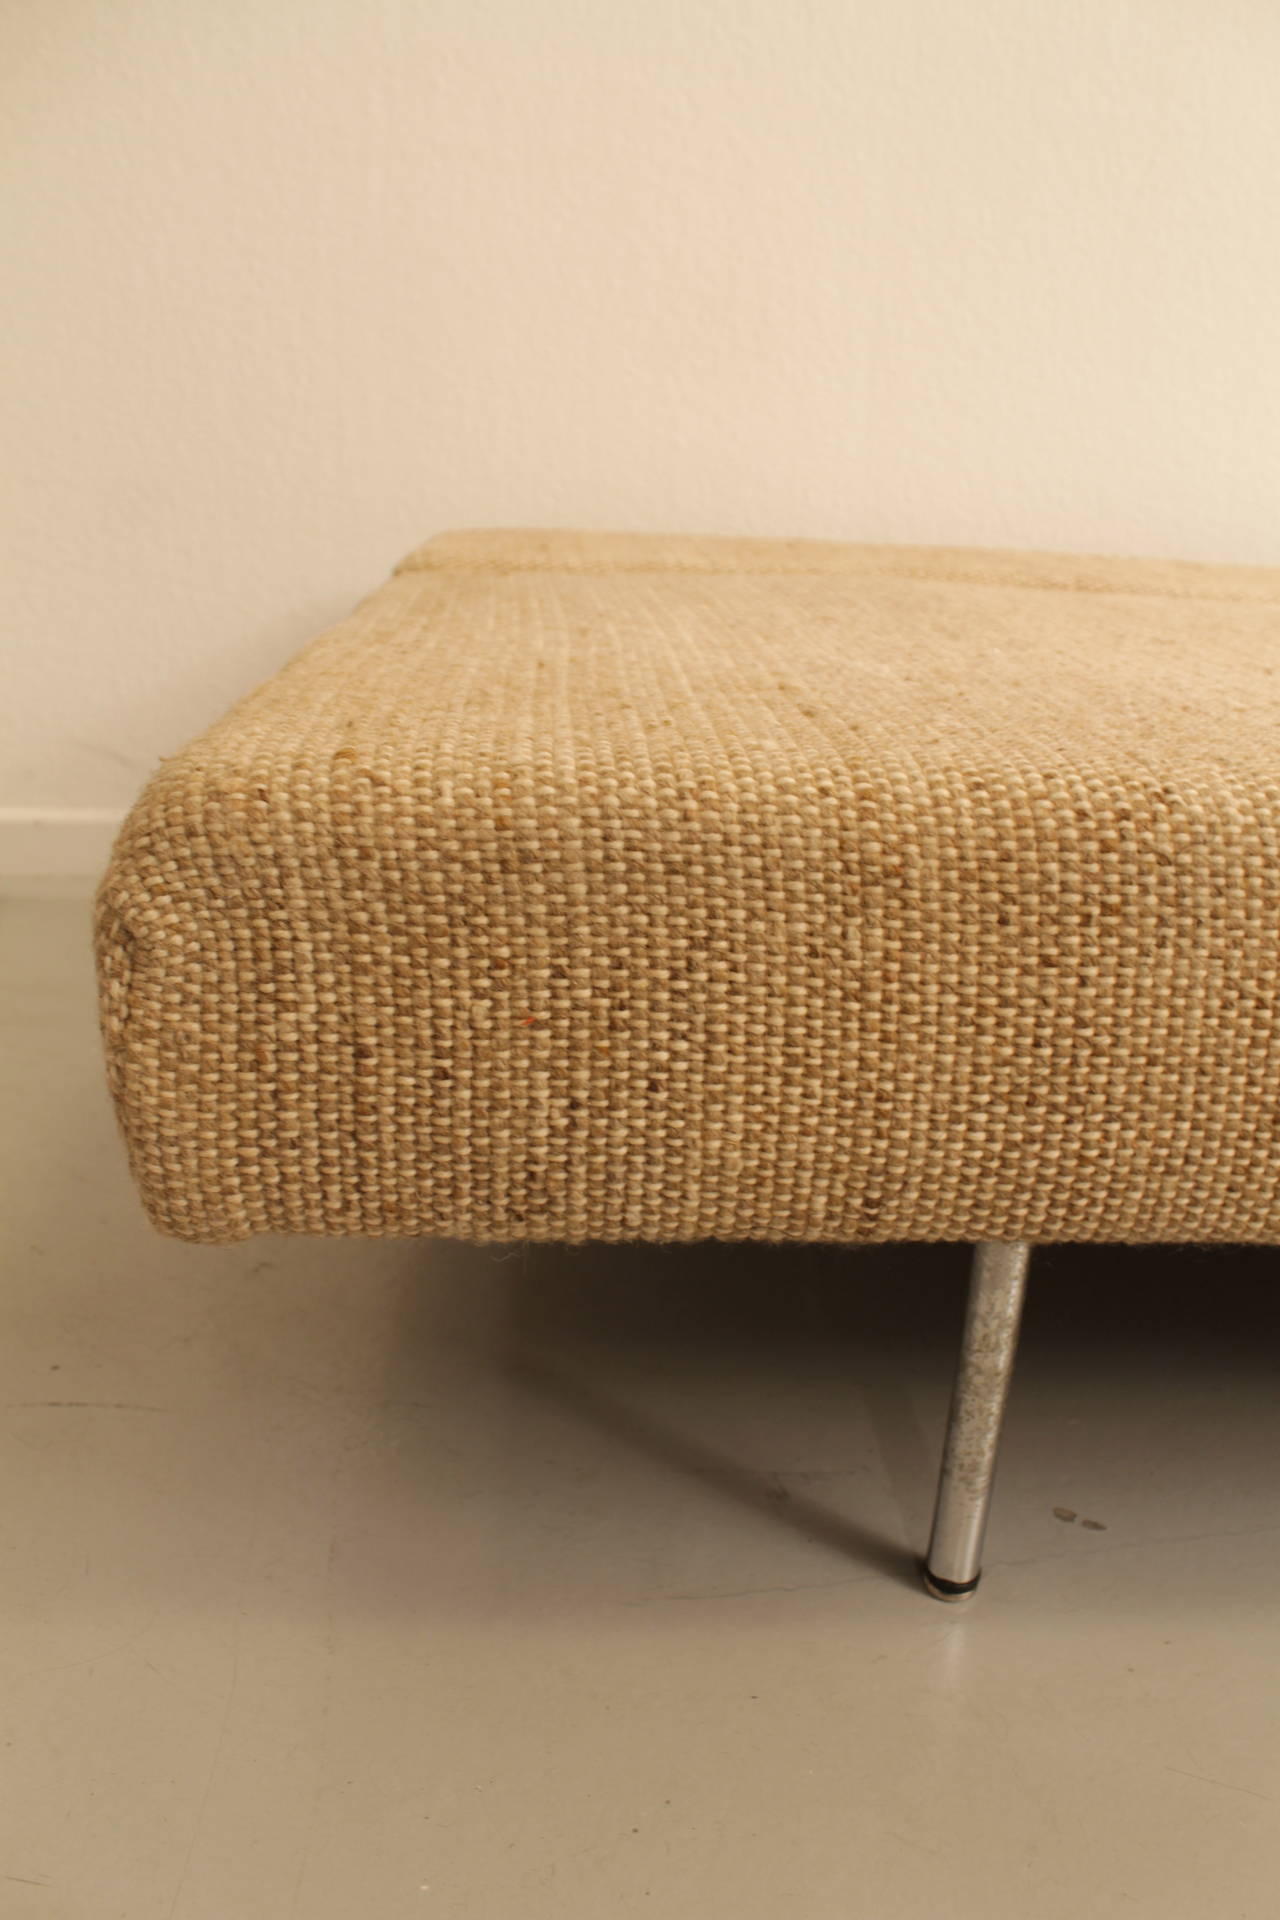 Minimalist 1950s swiss sofa bed at 1stdibs for Minimalist sofa